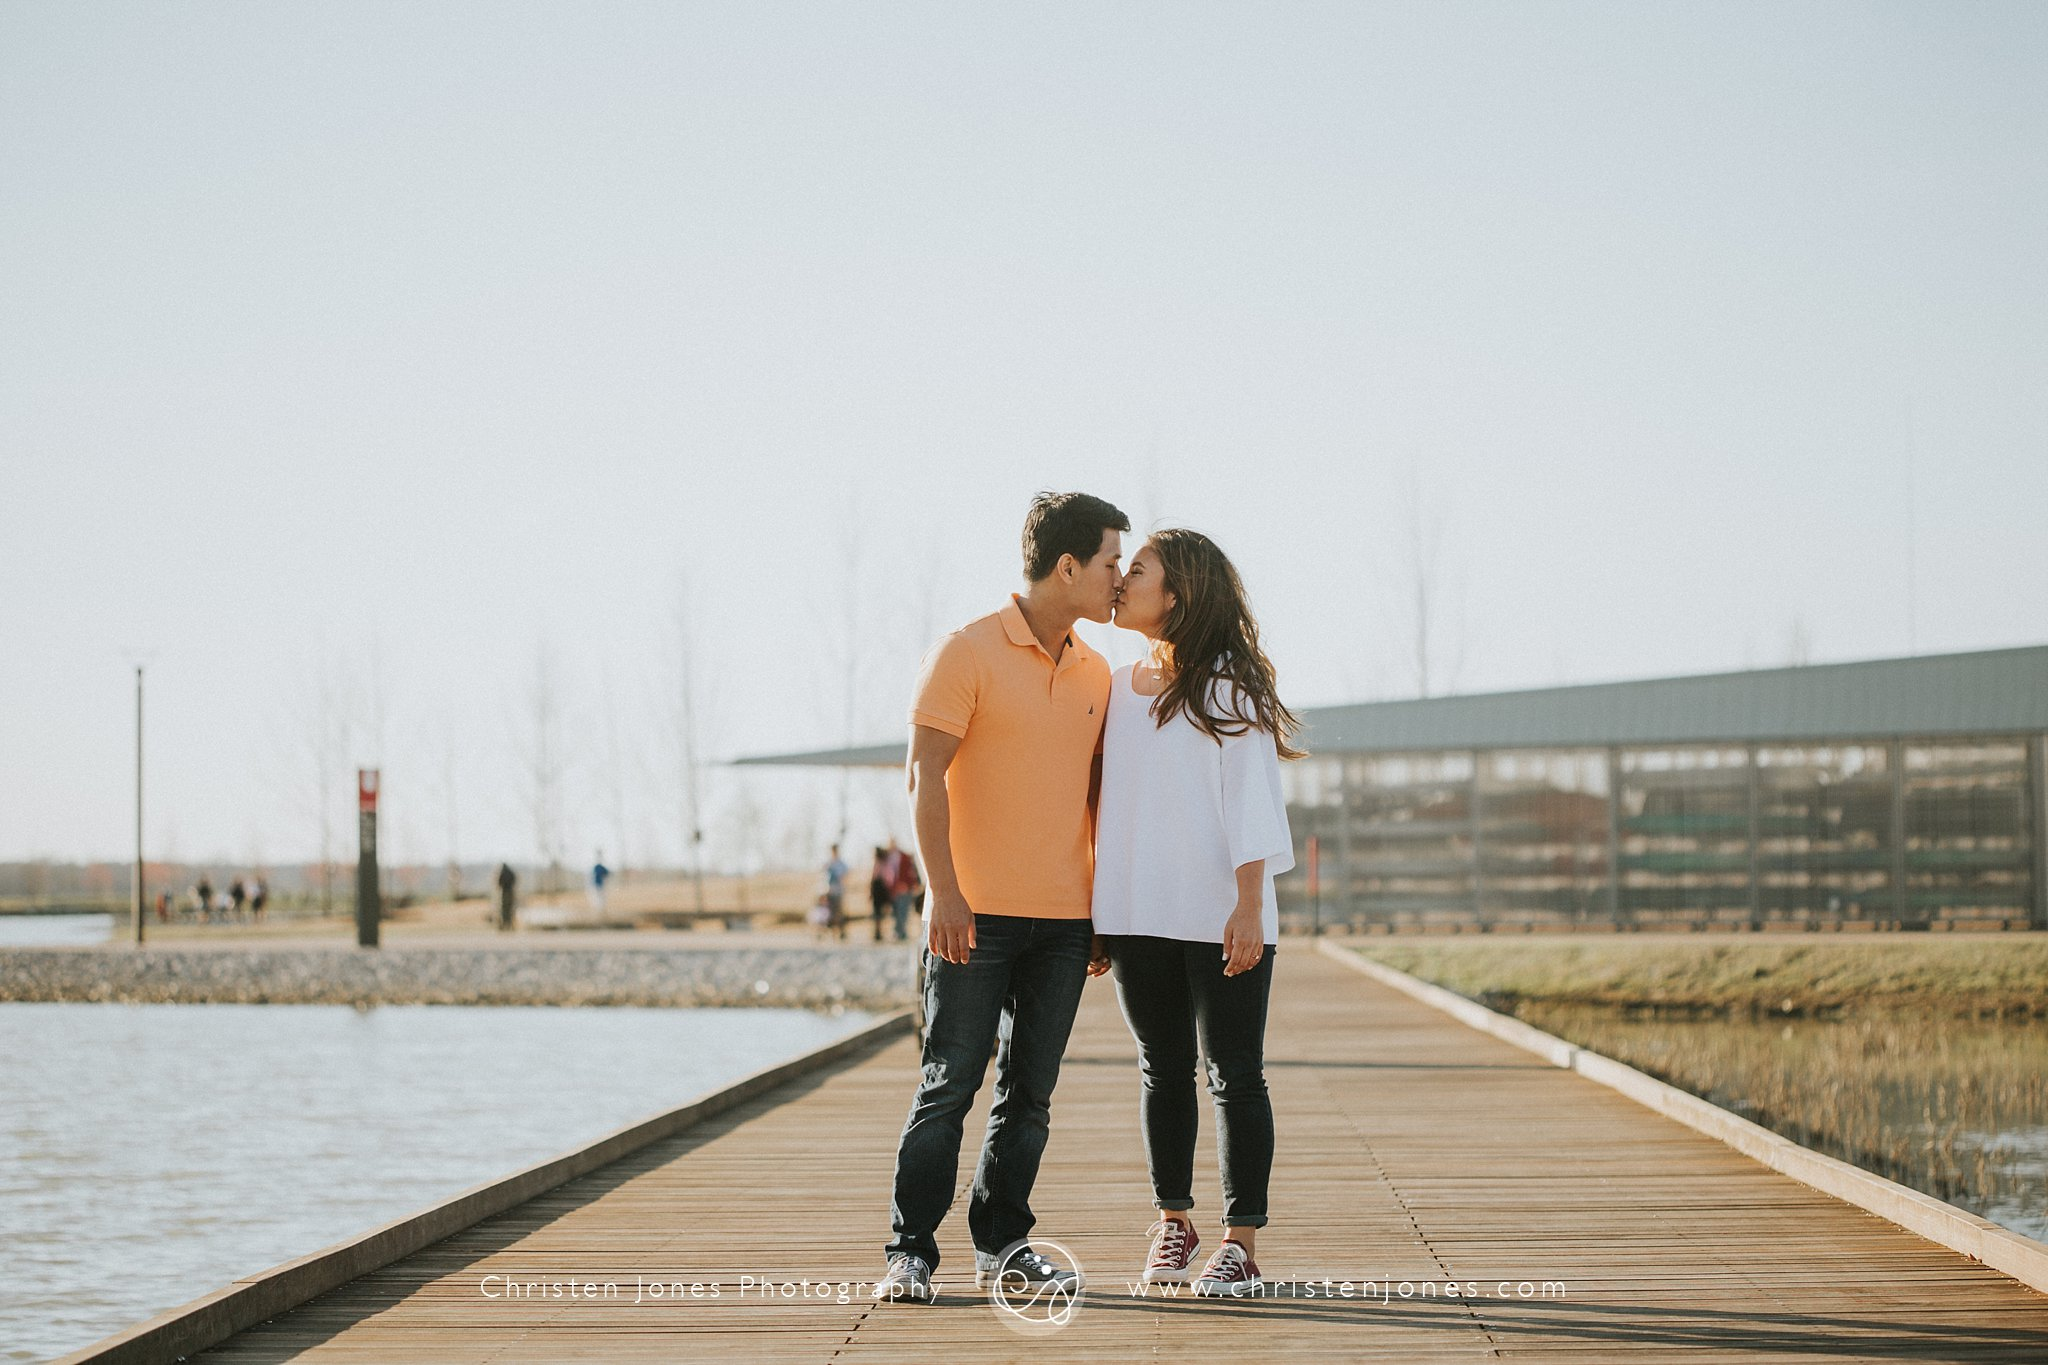 bride,couple,engagement,engagement session,groom,i do,love,married,yes,